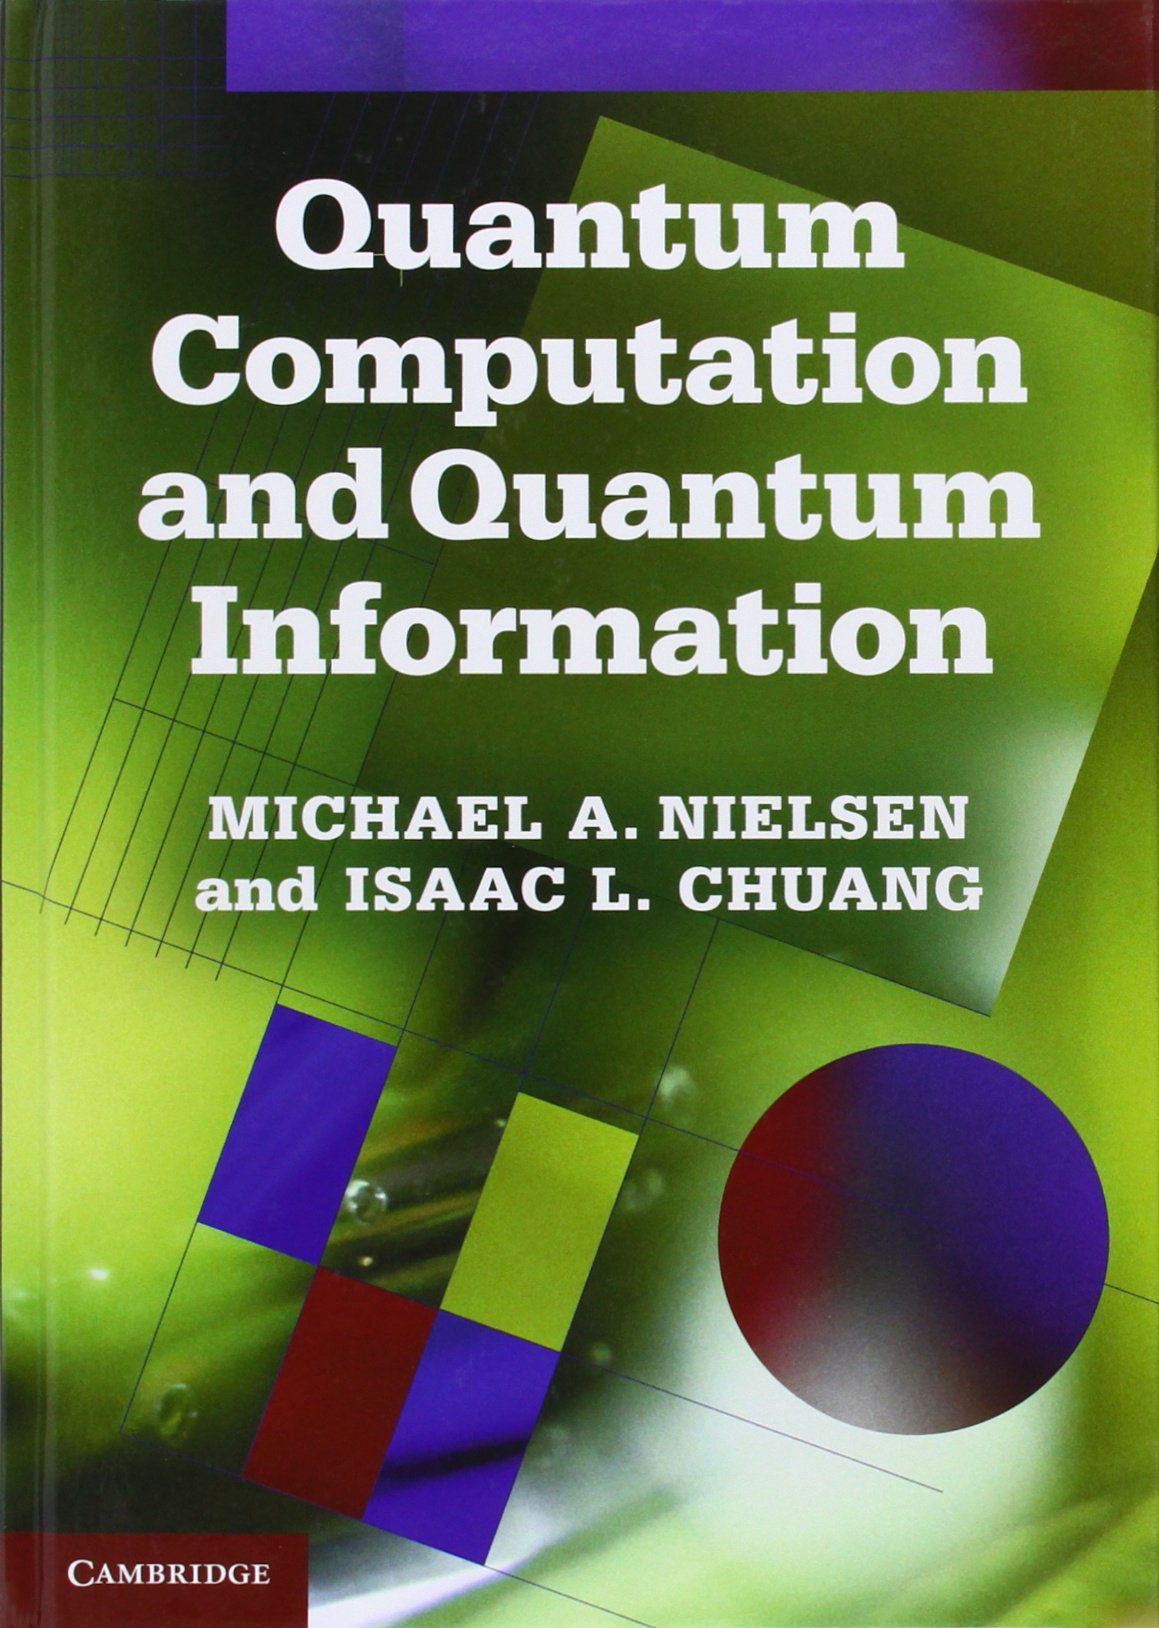 Quantum computation and quantum information 10th anniversary quantum computation and quantum information 10th anniversary edition amazon michael a nielsen isaac l chuang 9781107002173 books solutioingenieria Image collections